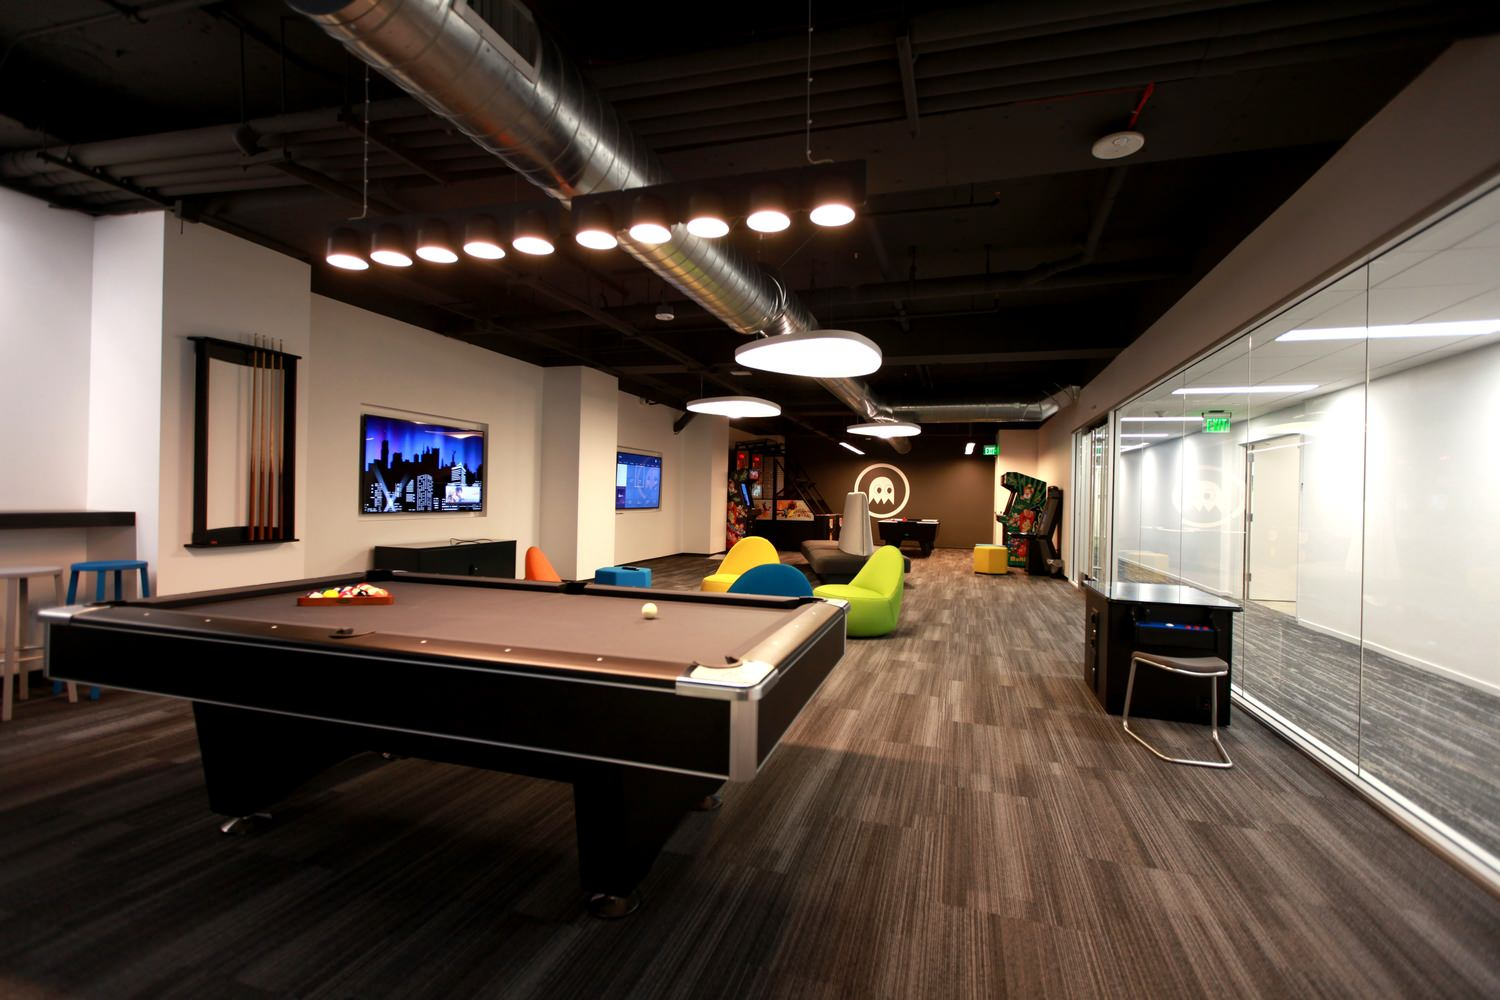 A recreational room with a pool table, arcade games, and lounge seating.